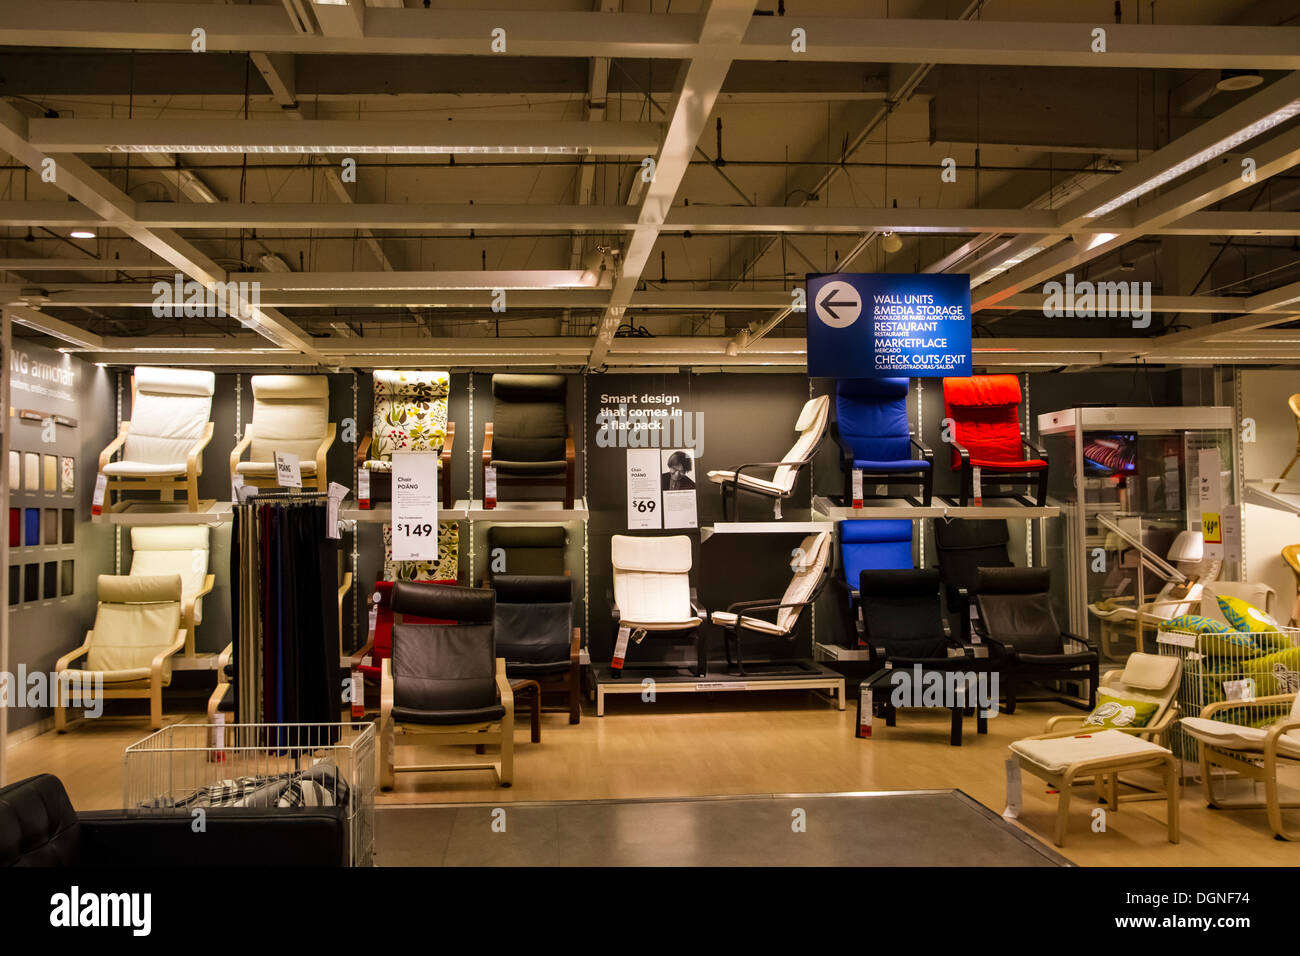 Inside the ikea store in burbank califorinia stock photo for Furniture stores in burbank